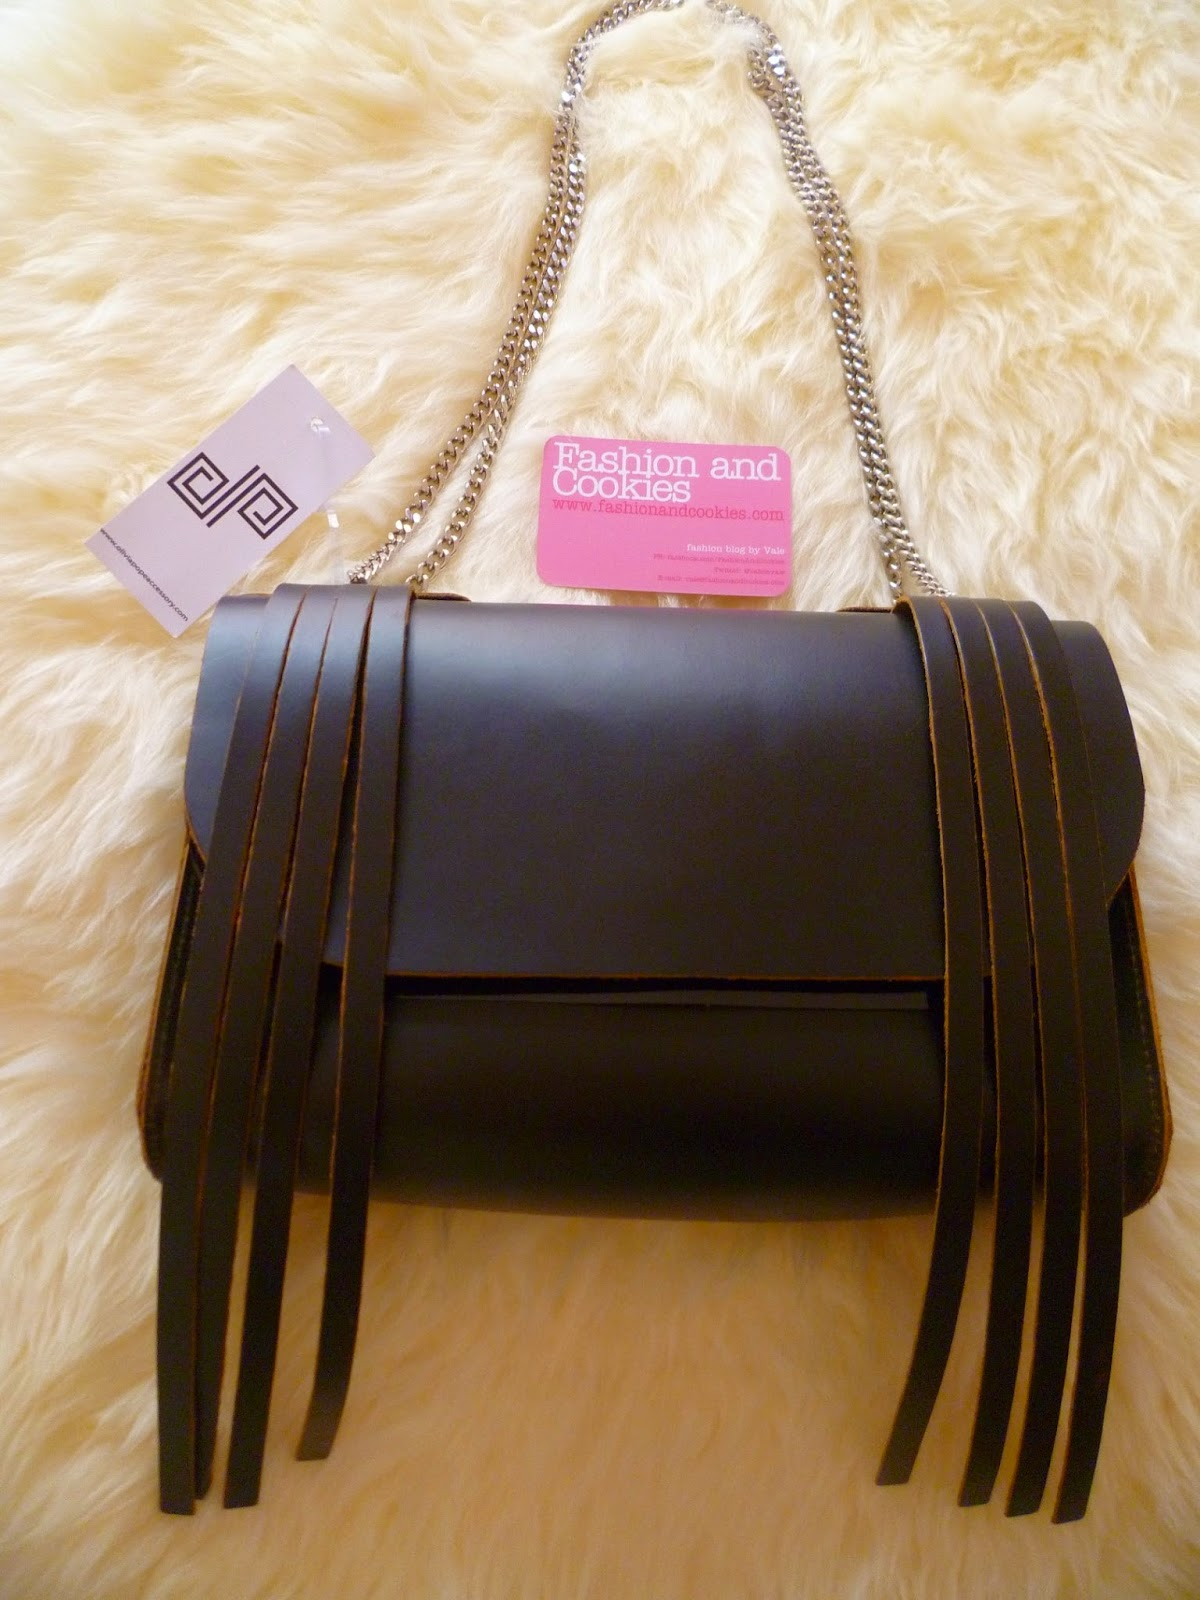 Olivia Pope Accessory, Olivia Pope New York bag, Made in Italy trendy leather bags,  Fashion and Cookies, fashion blogger